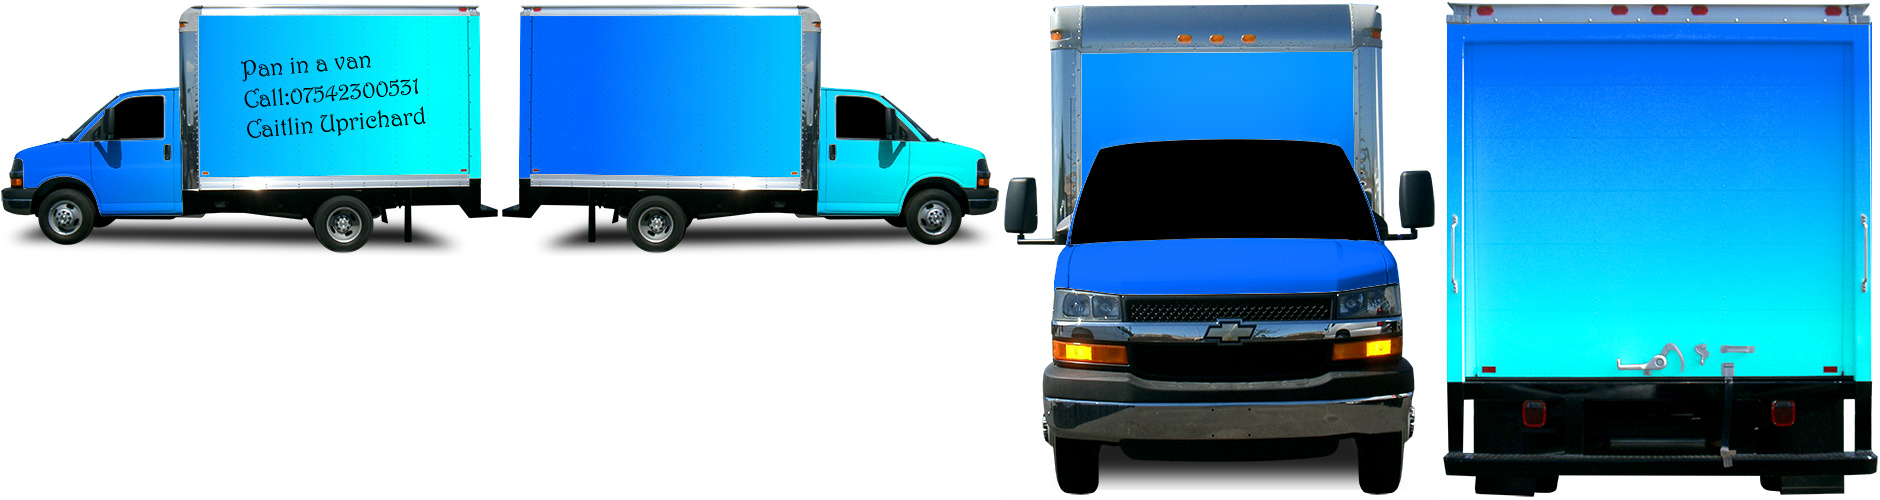 Customize My Truck >> Box Truck Wrap Custom Design 49128 By New Designer 49092 Design